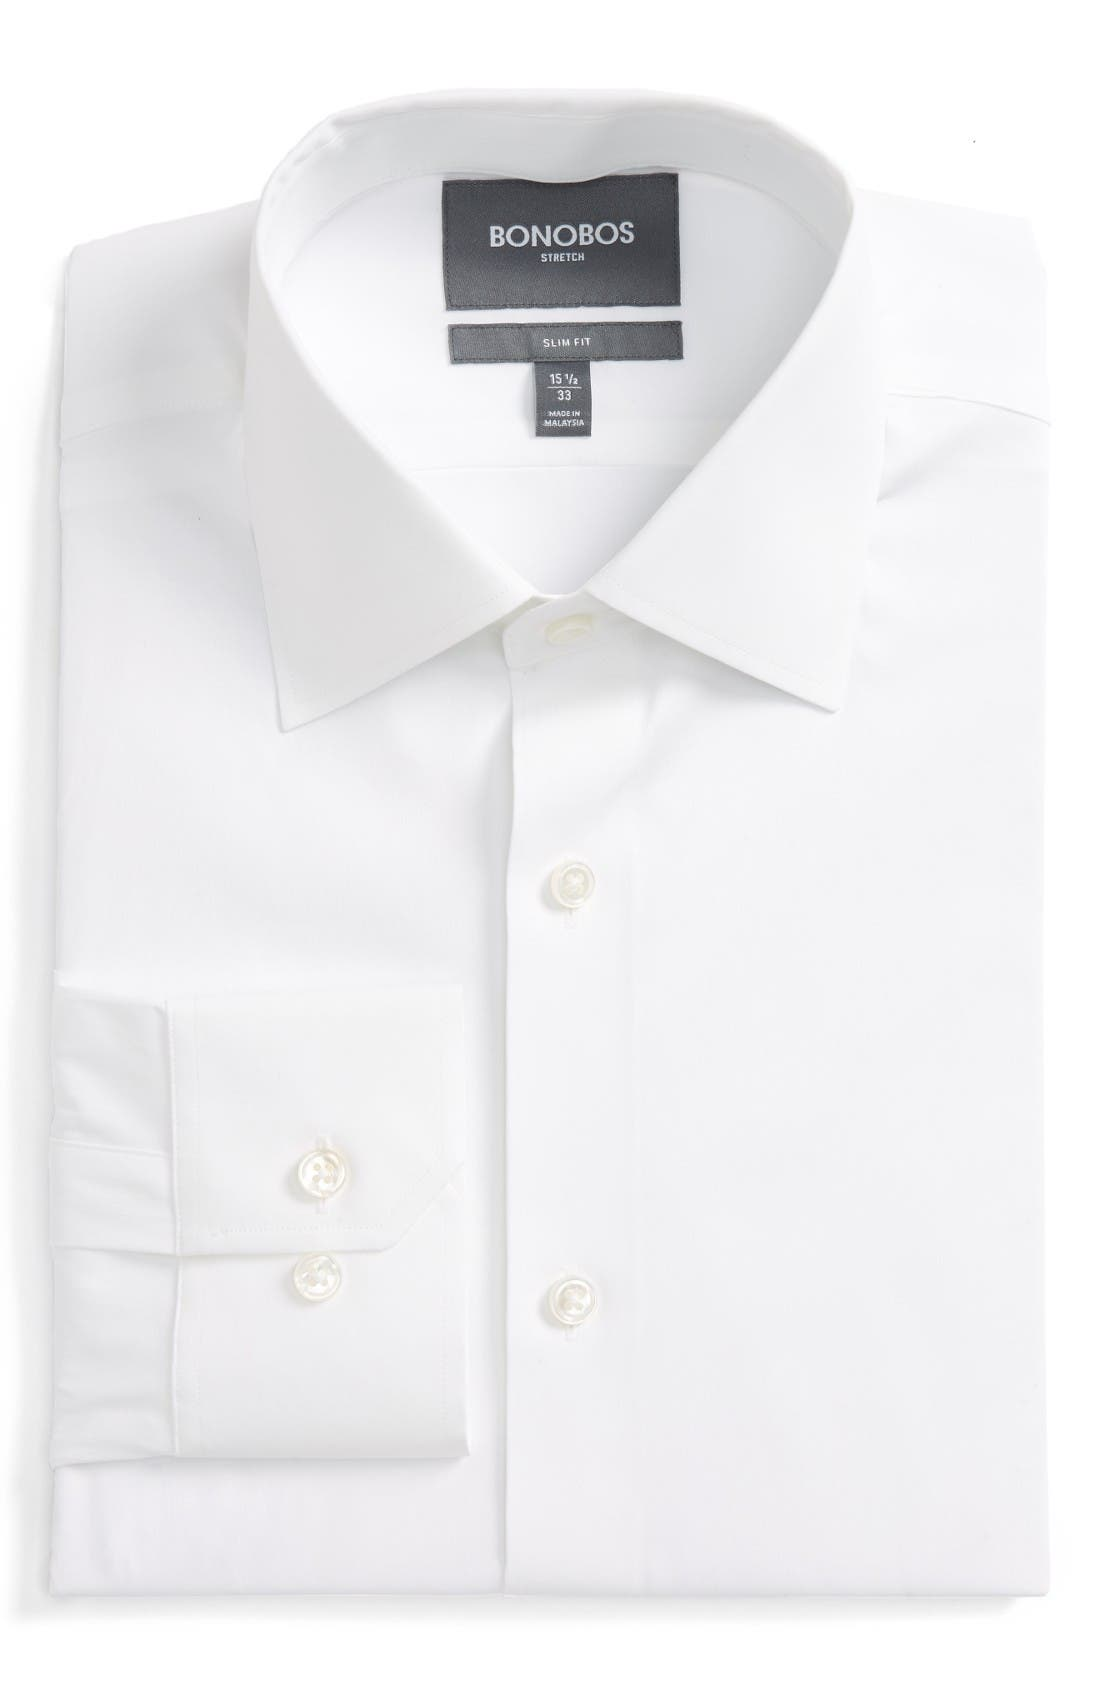 Bonobos Jetsetter Slim Fit Stretch Solid Dress Shirt